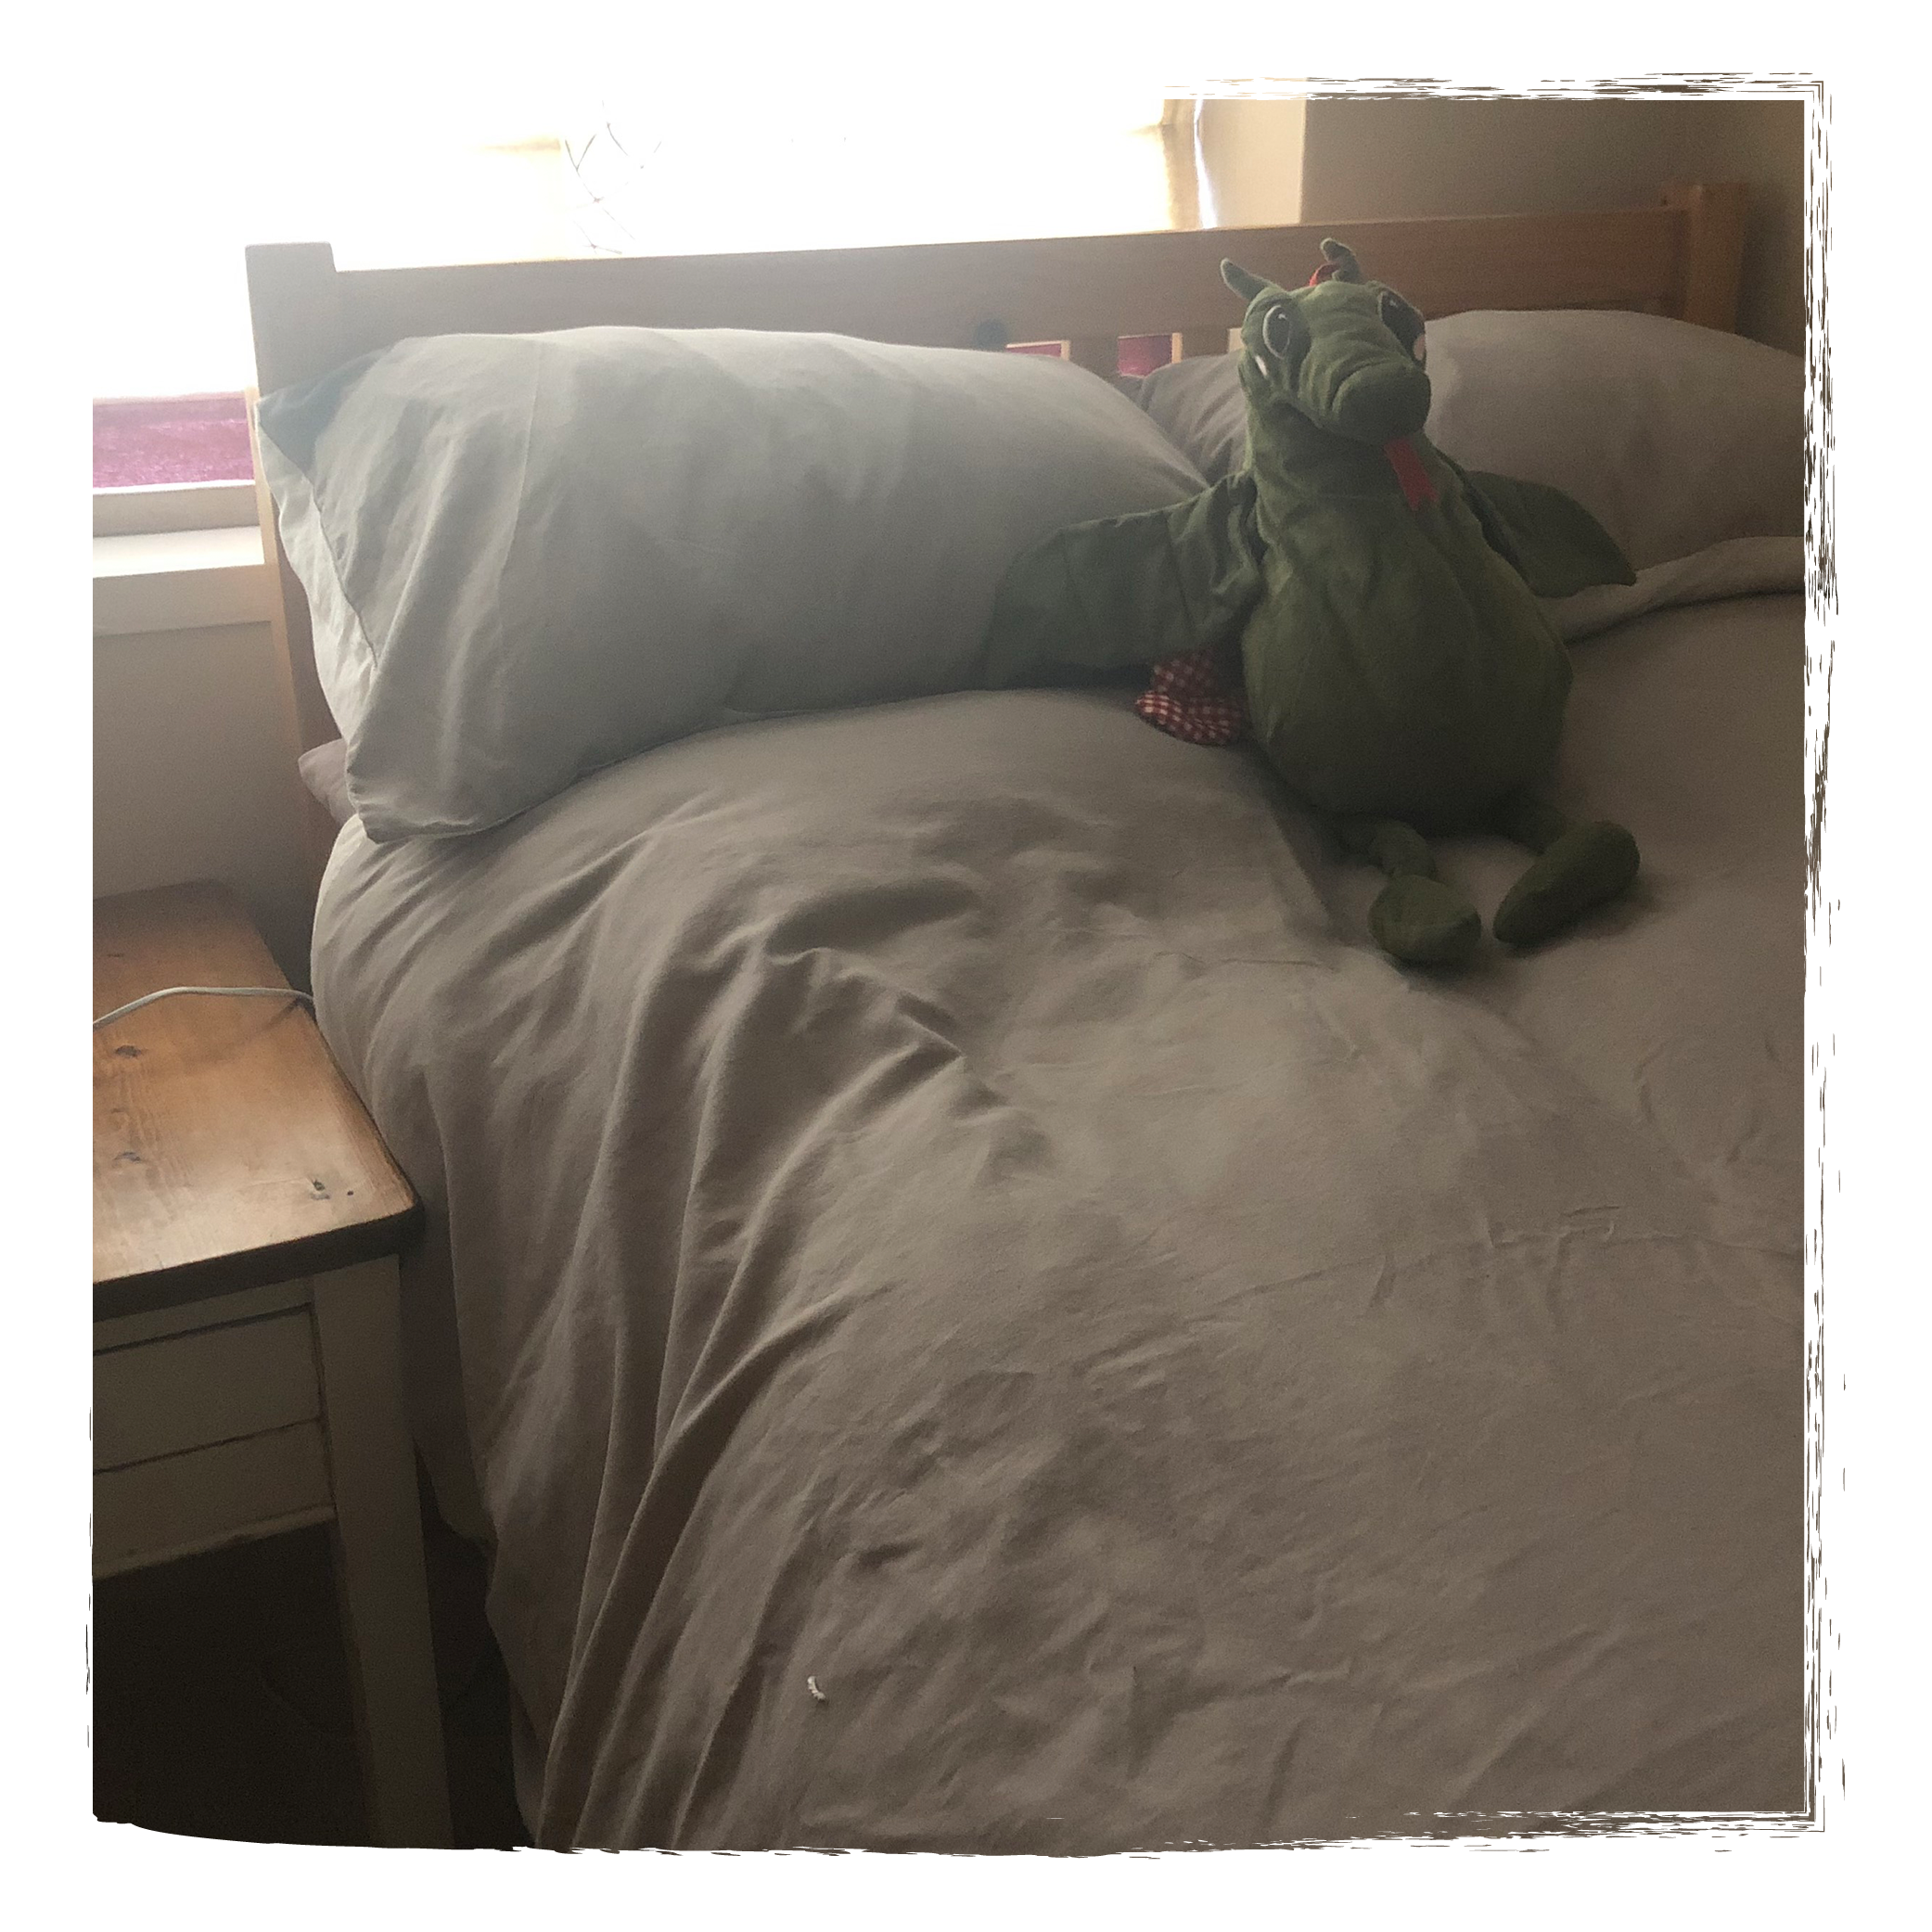 a bed with a dragon stuffed toy